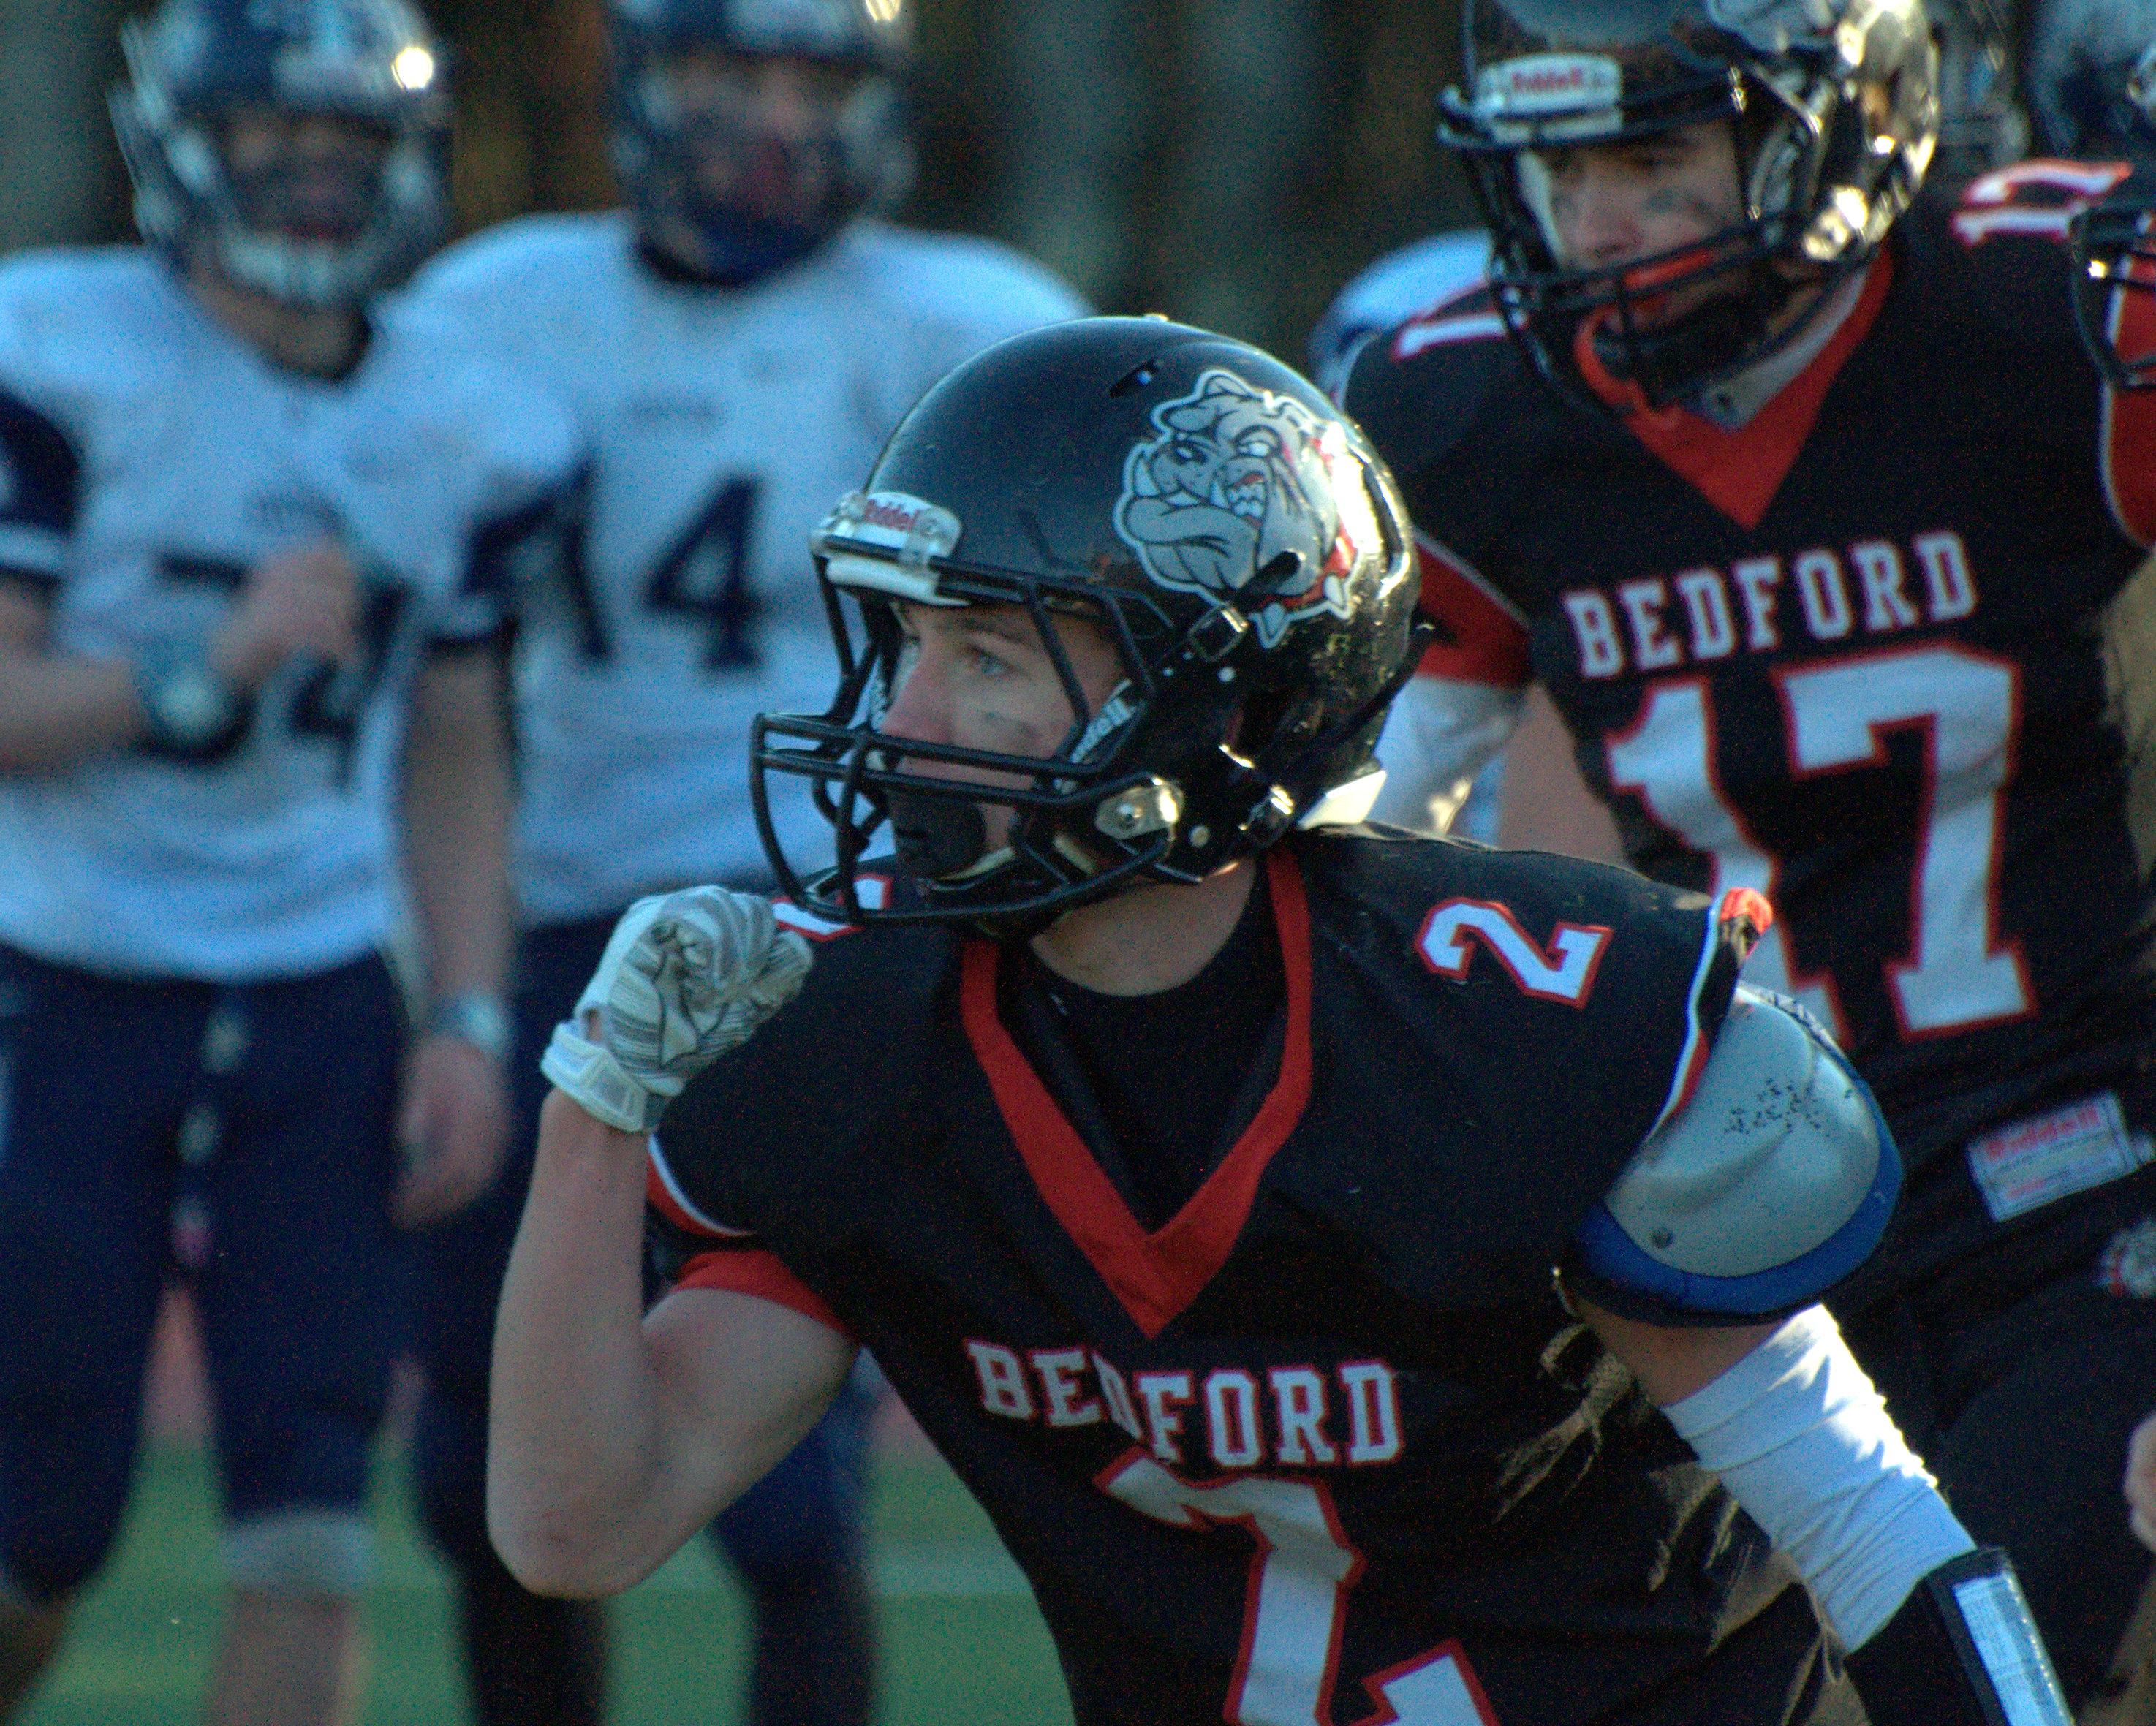 Bedford's Taylor Larson pumps his fist after catching the game-winning touchdown Saturday.